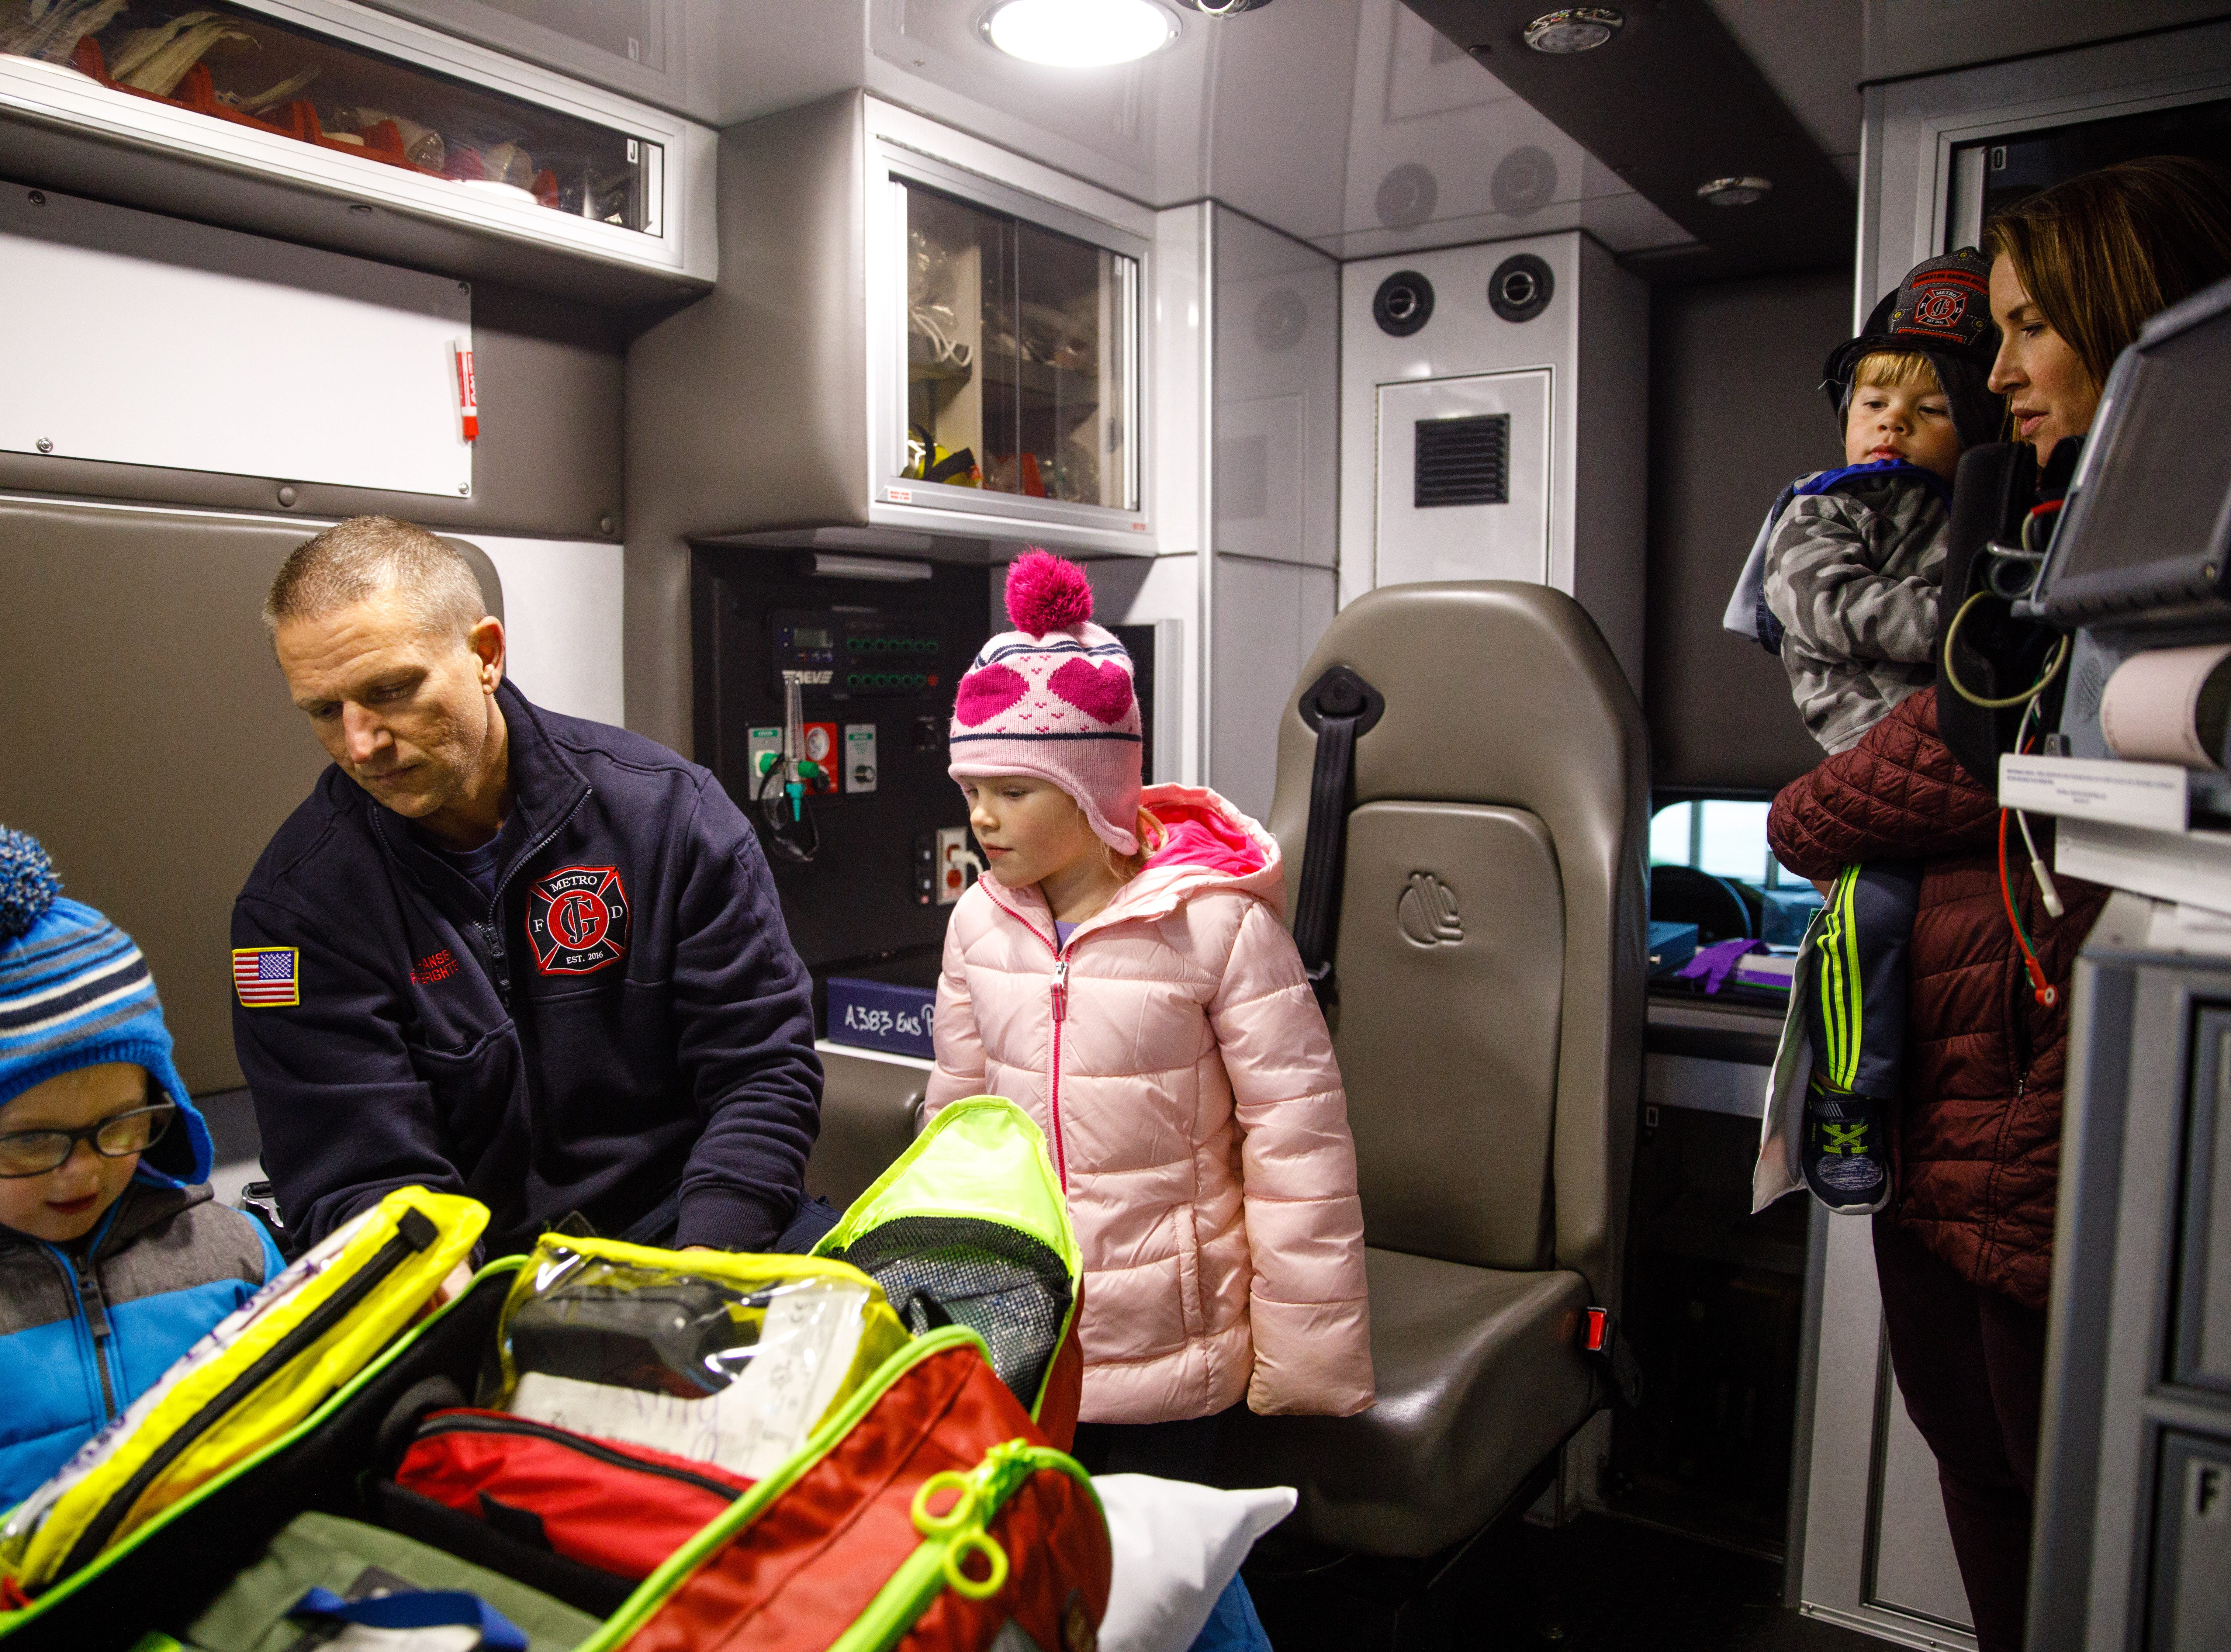 Firefighter/Paramedic Brook Hansen shows Braxton Lems, 3, and Sophie Lems, 4, both of Johnston, a kit of medical supplies as Laura Sprague and TJ Sprague, 2, both of Grimes, watch Wednesday, Oct. 10, 2018, during the Johnston-Grimes Metropolitan Fire Department's annual Fire Prevention Week Open House at the 62nd Avenue Fire Station in Johnston.